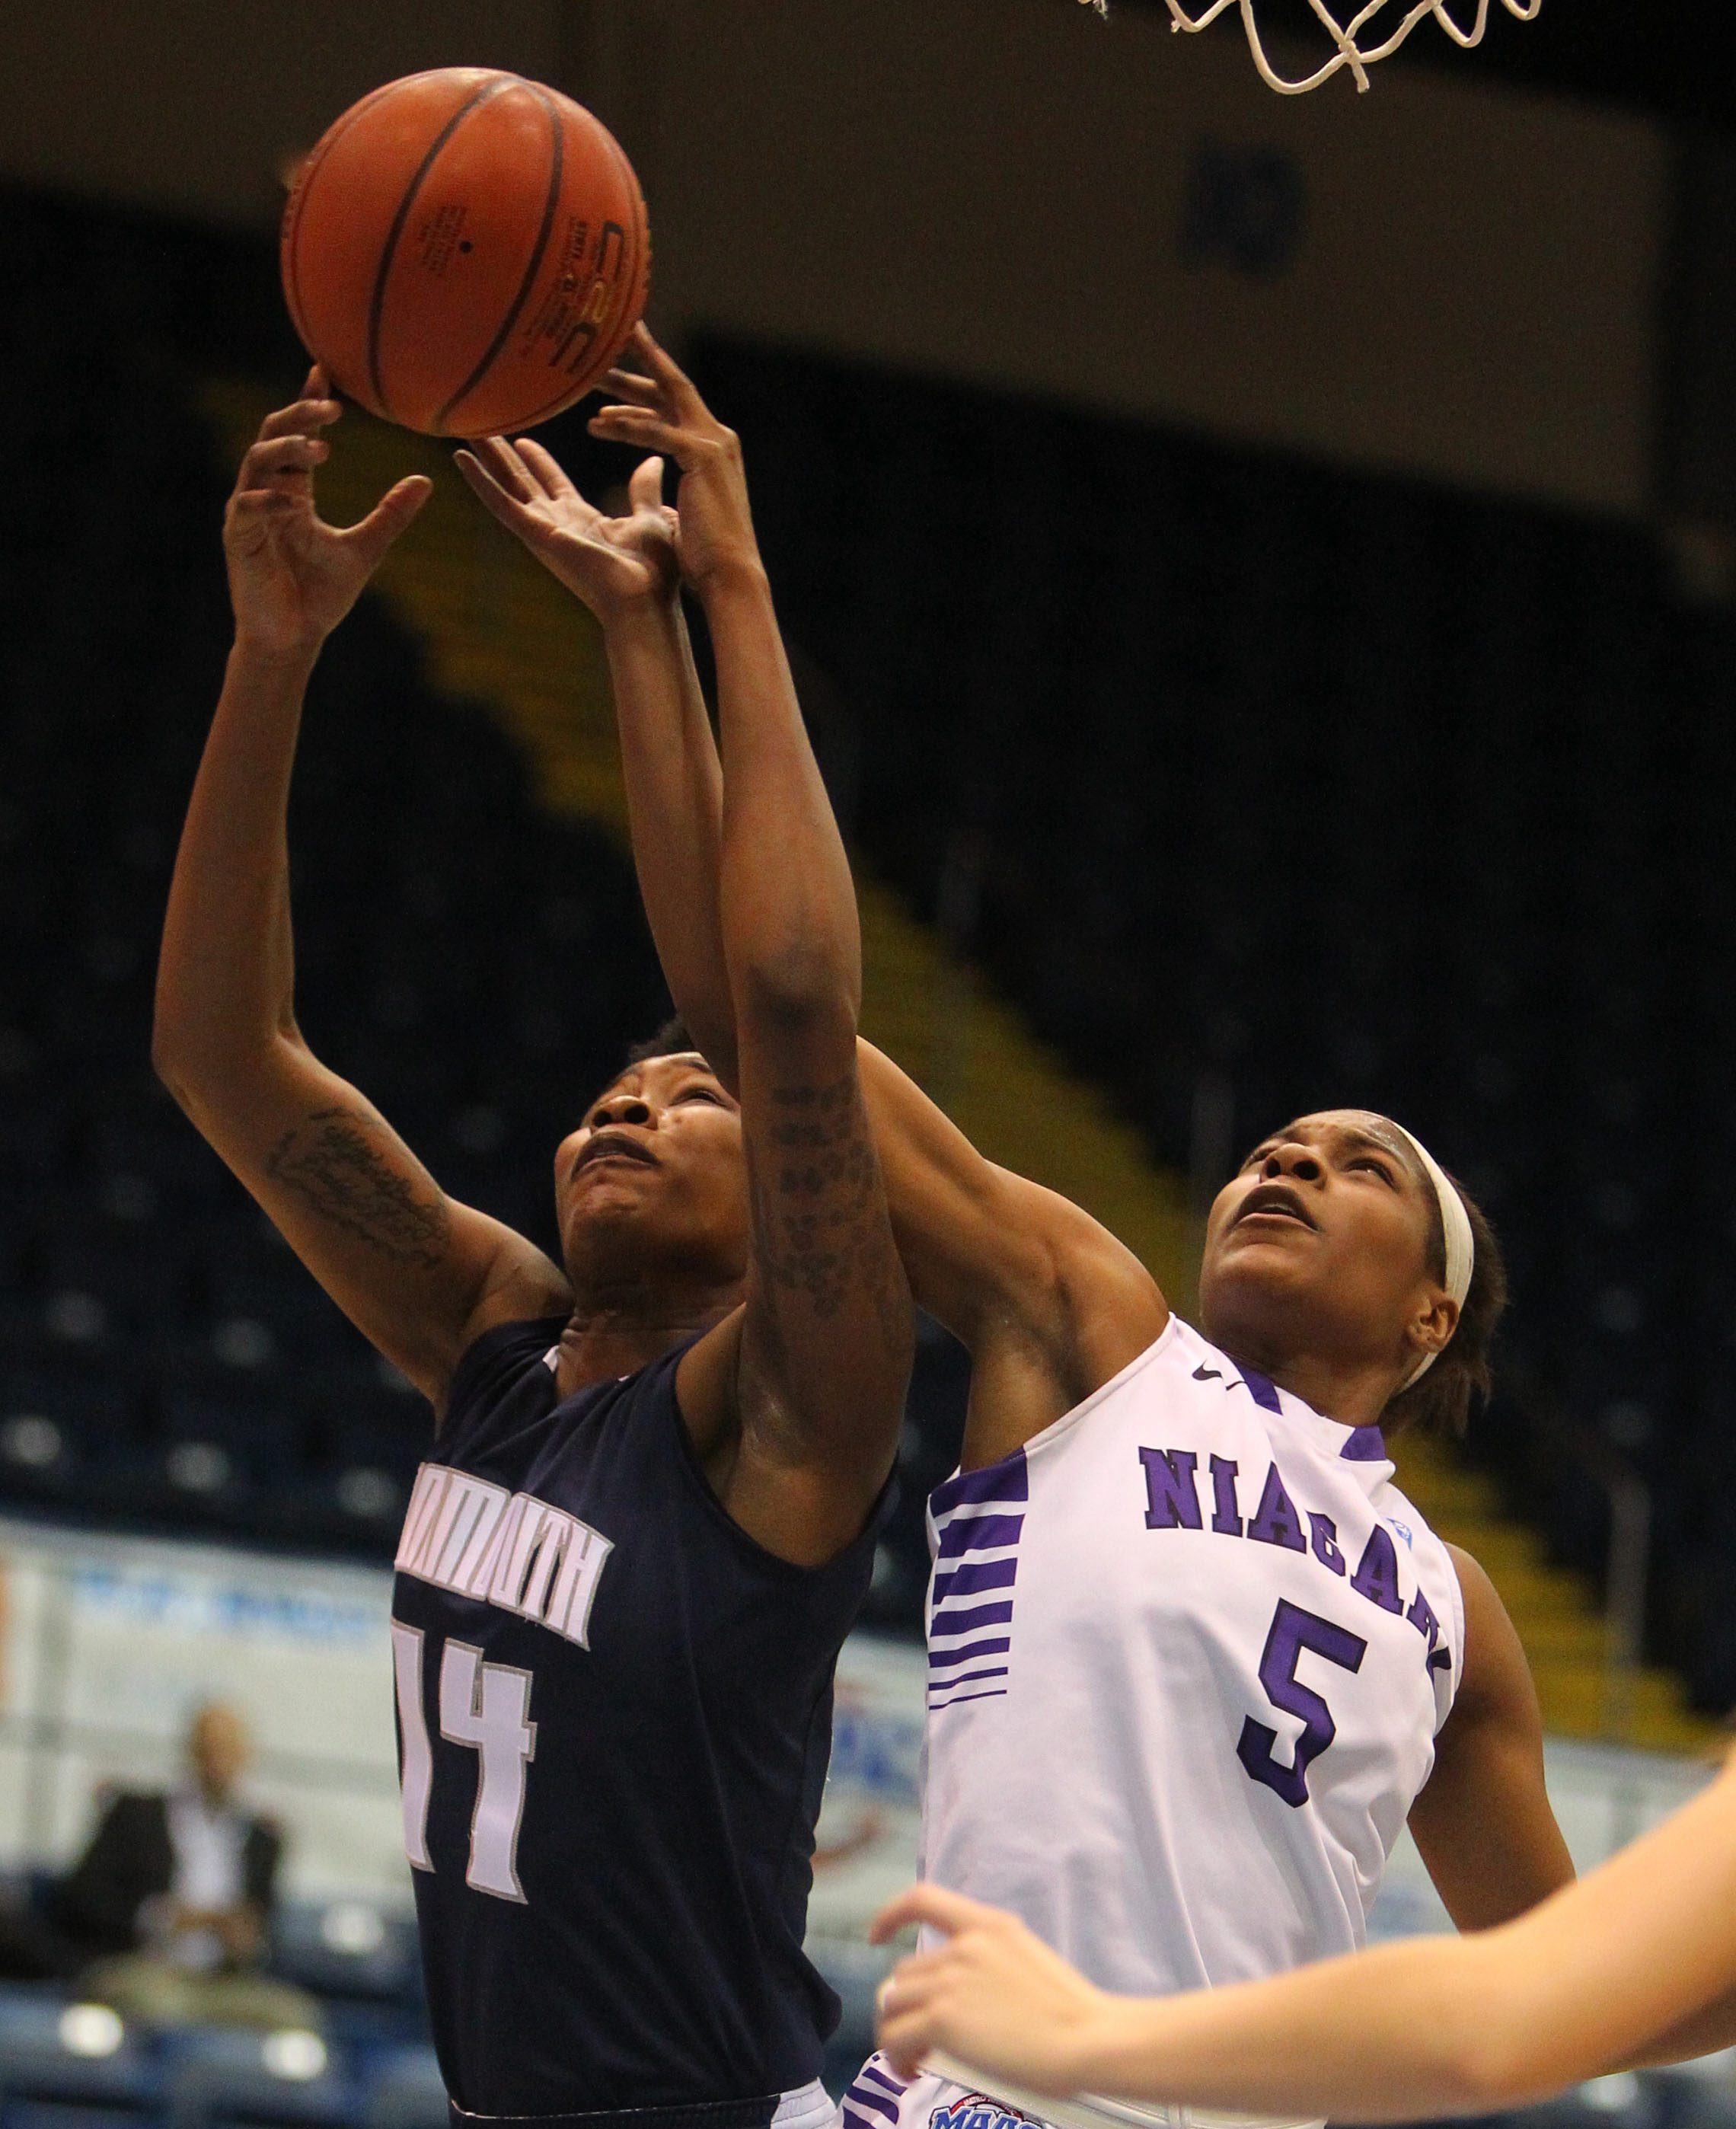 Niagara's Chanel Johnson reaches for a rebound with Monmouth's Christina Mitchell in the first half of the first round of the MAAC tournament at the MassMutual Center in Springfield, MA Thursday, March 6, 2014.    (Mark Mulville/Buffalo News)